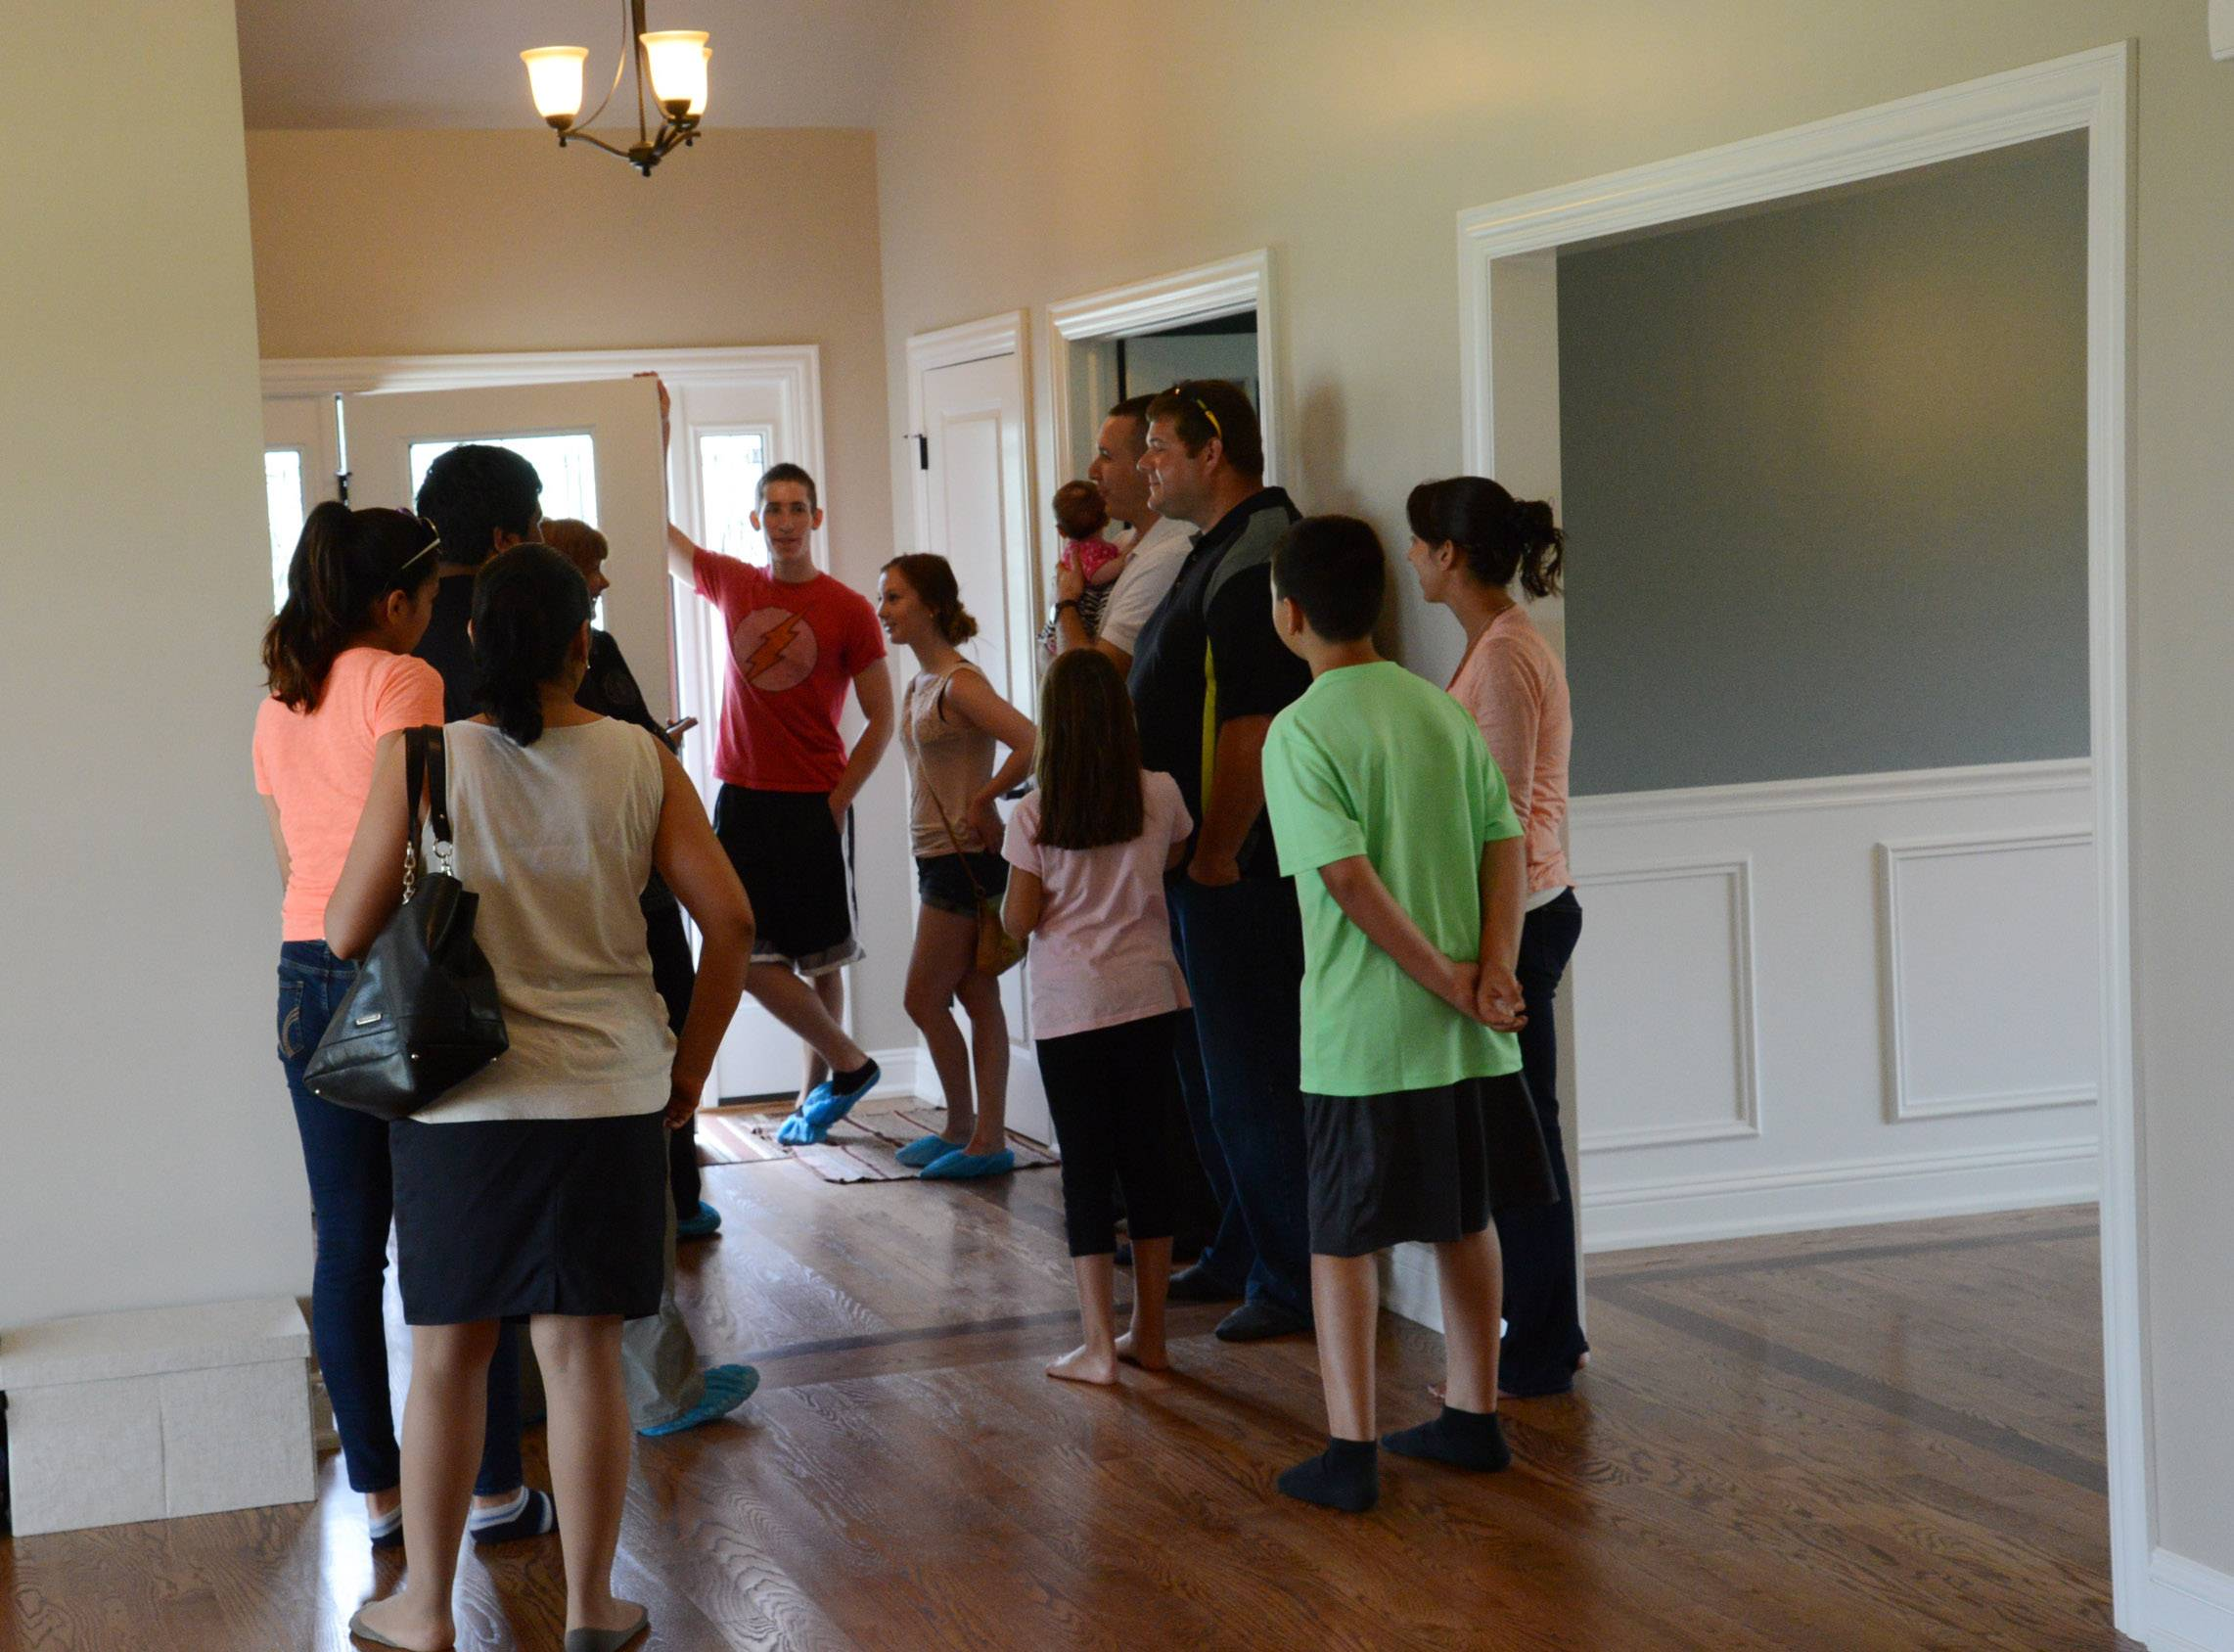 Students and instructors from District 214's Practical Architectural Construction course hosted an open house Thursday for the four-bedroom, 2½-bath Prospect Heights home they built. The house is expected to go on the market in July.